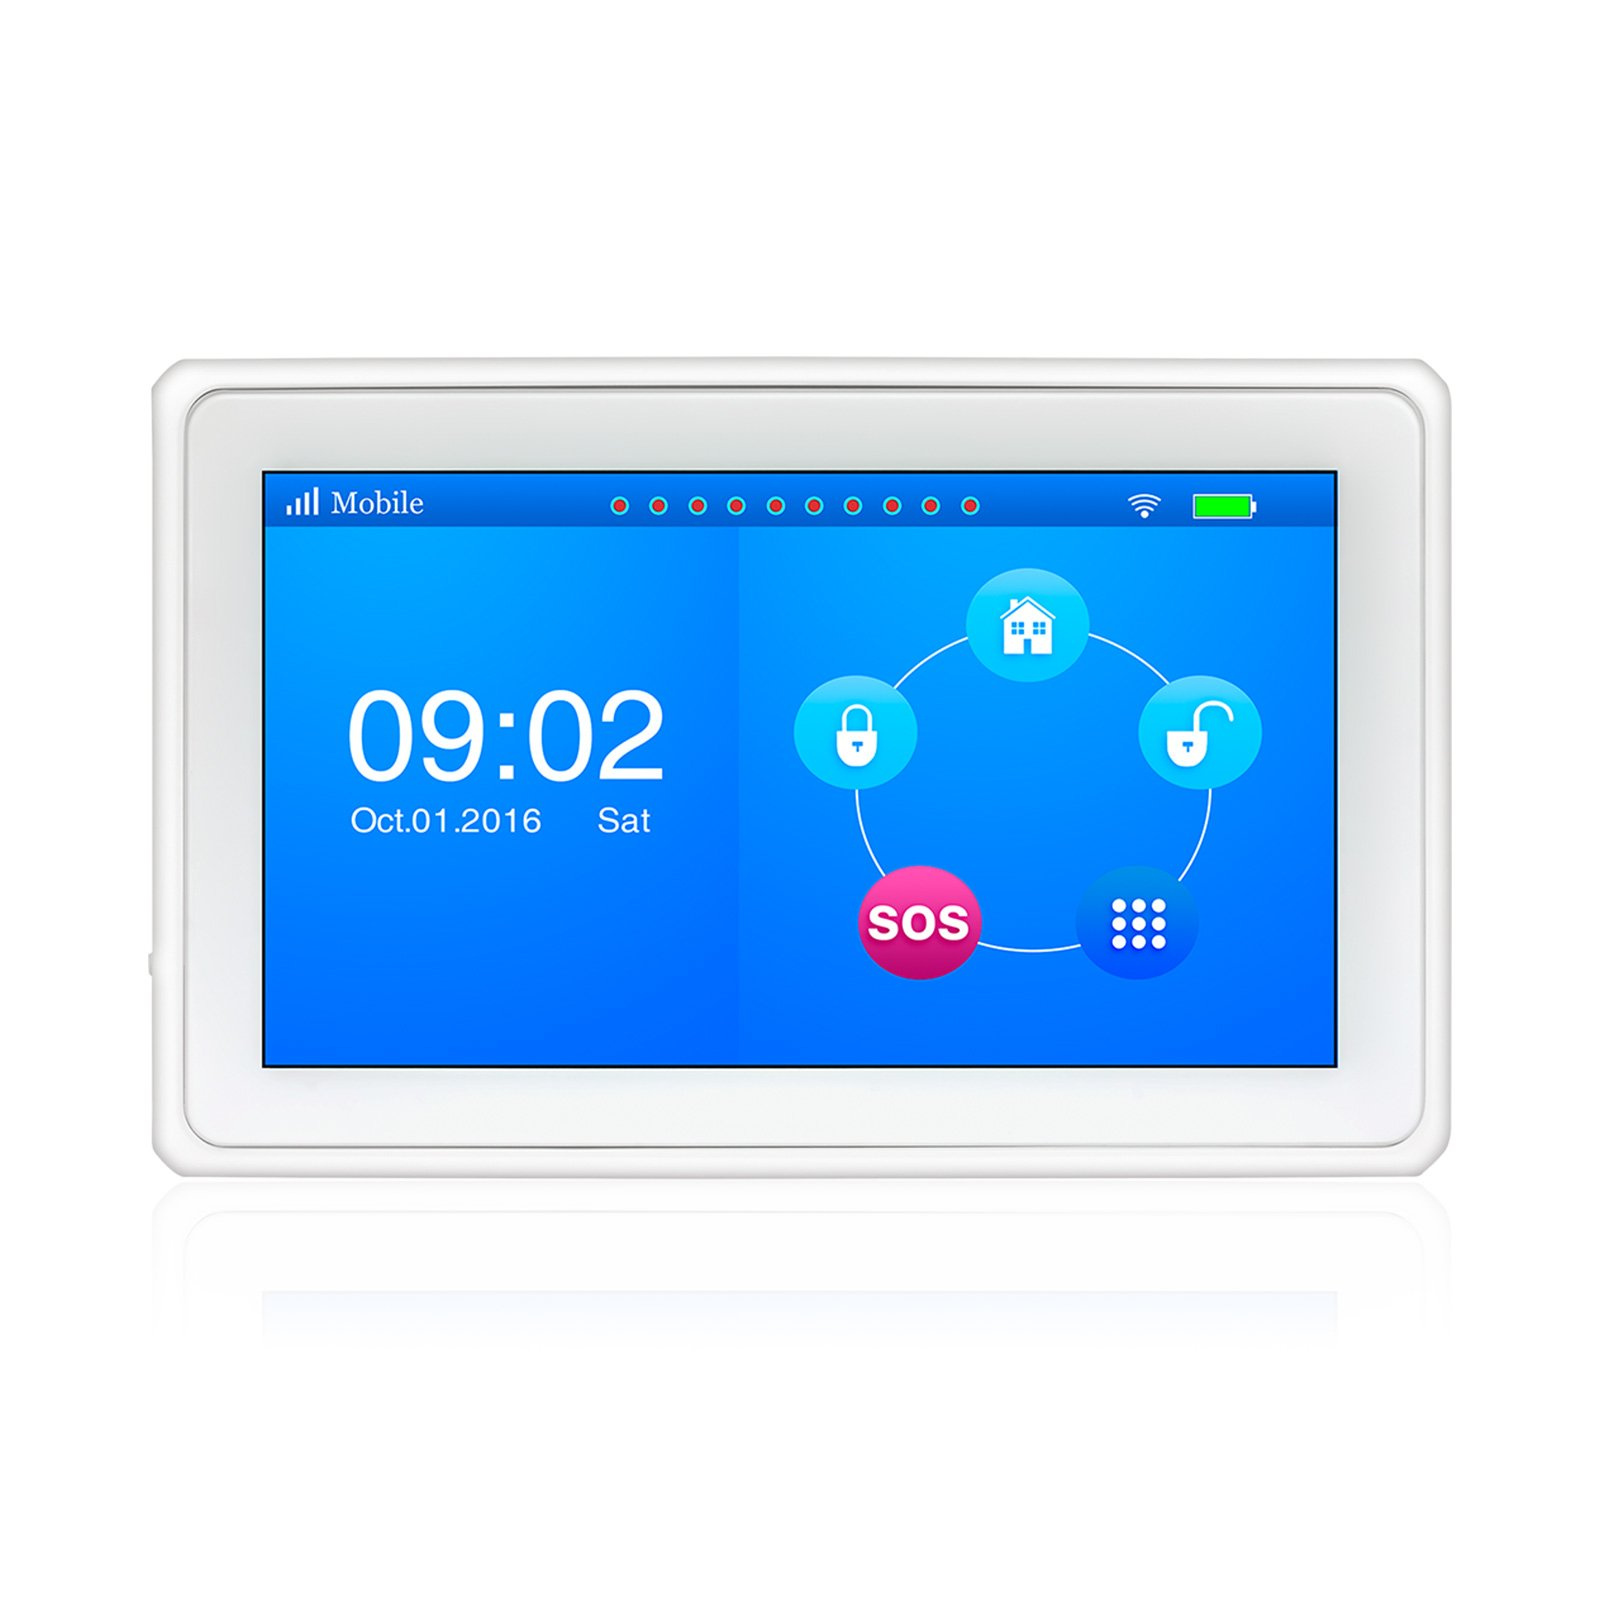 Kerui K7 Wireless 2.4G WIFI/GSM 7 Inch Color Display Touch Pad Home/House Burglar Intruder Alarm System DIY Kit Support IOS/Android APP Control Auto Dial Complete Home and Business Security